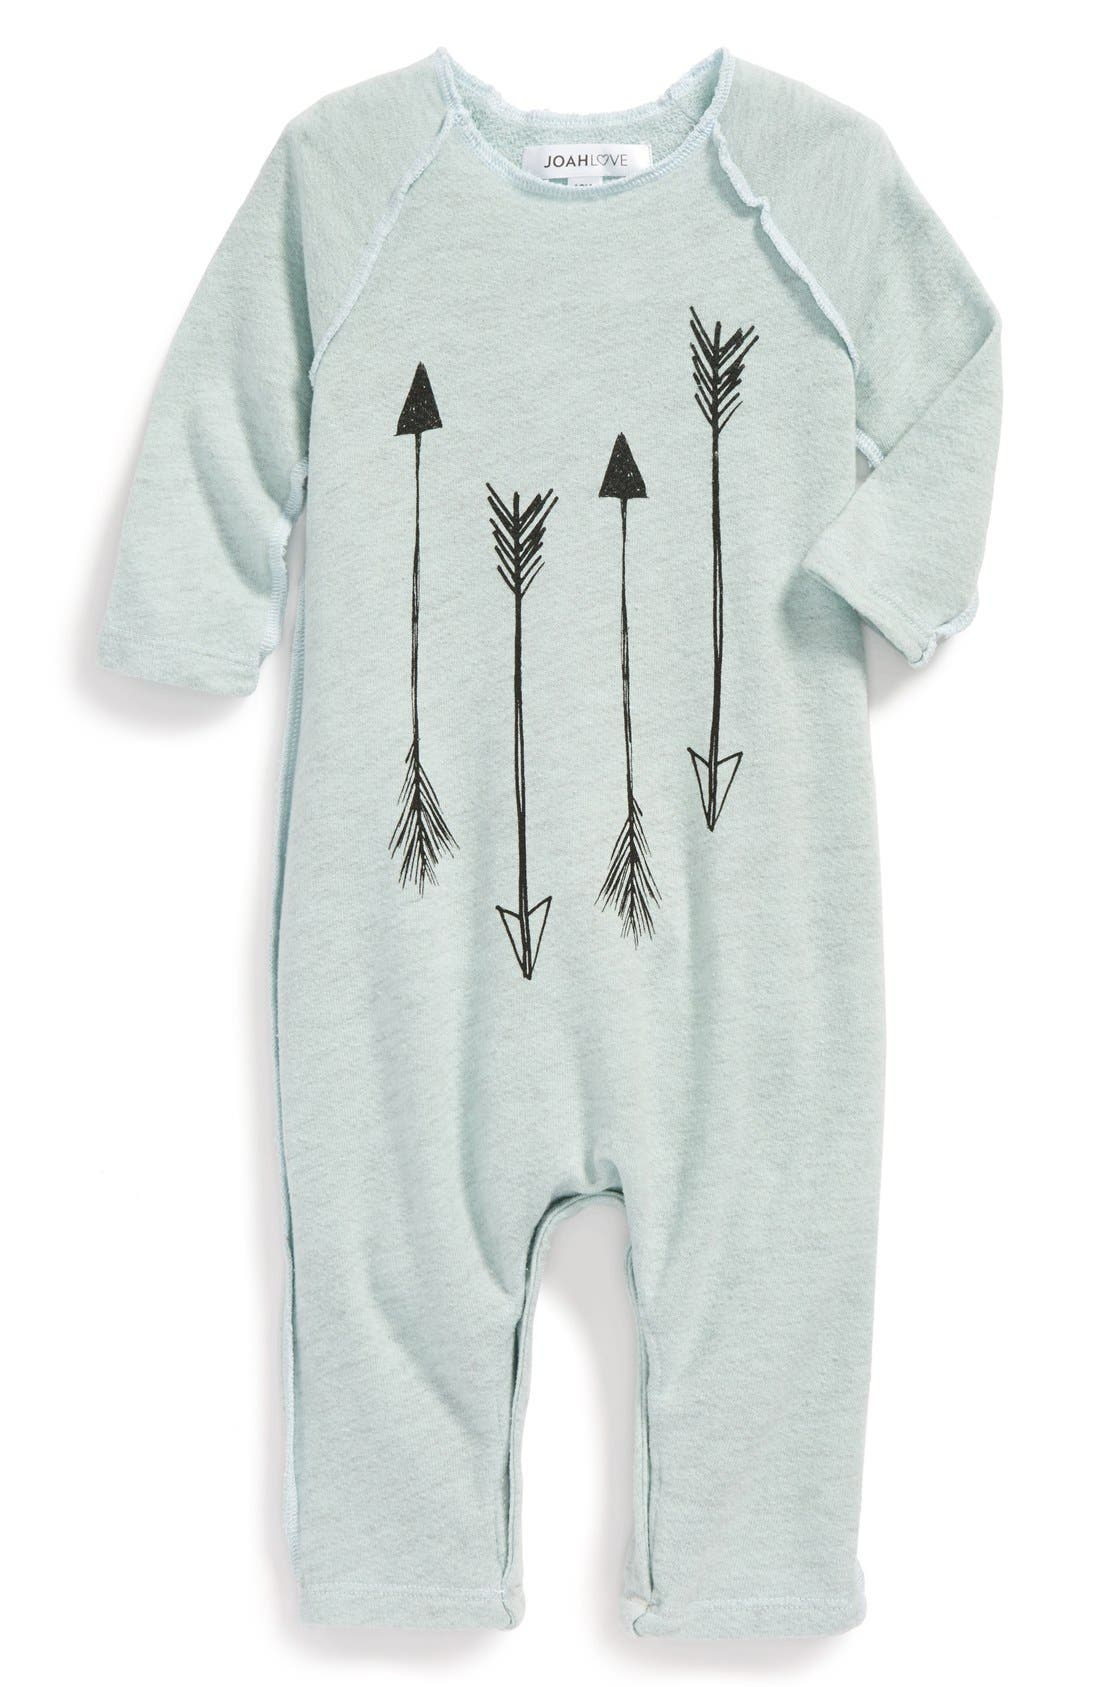 French Terry Romper,                             Main thumbnail 1, color,                             400